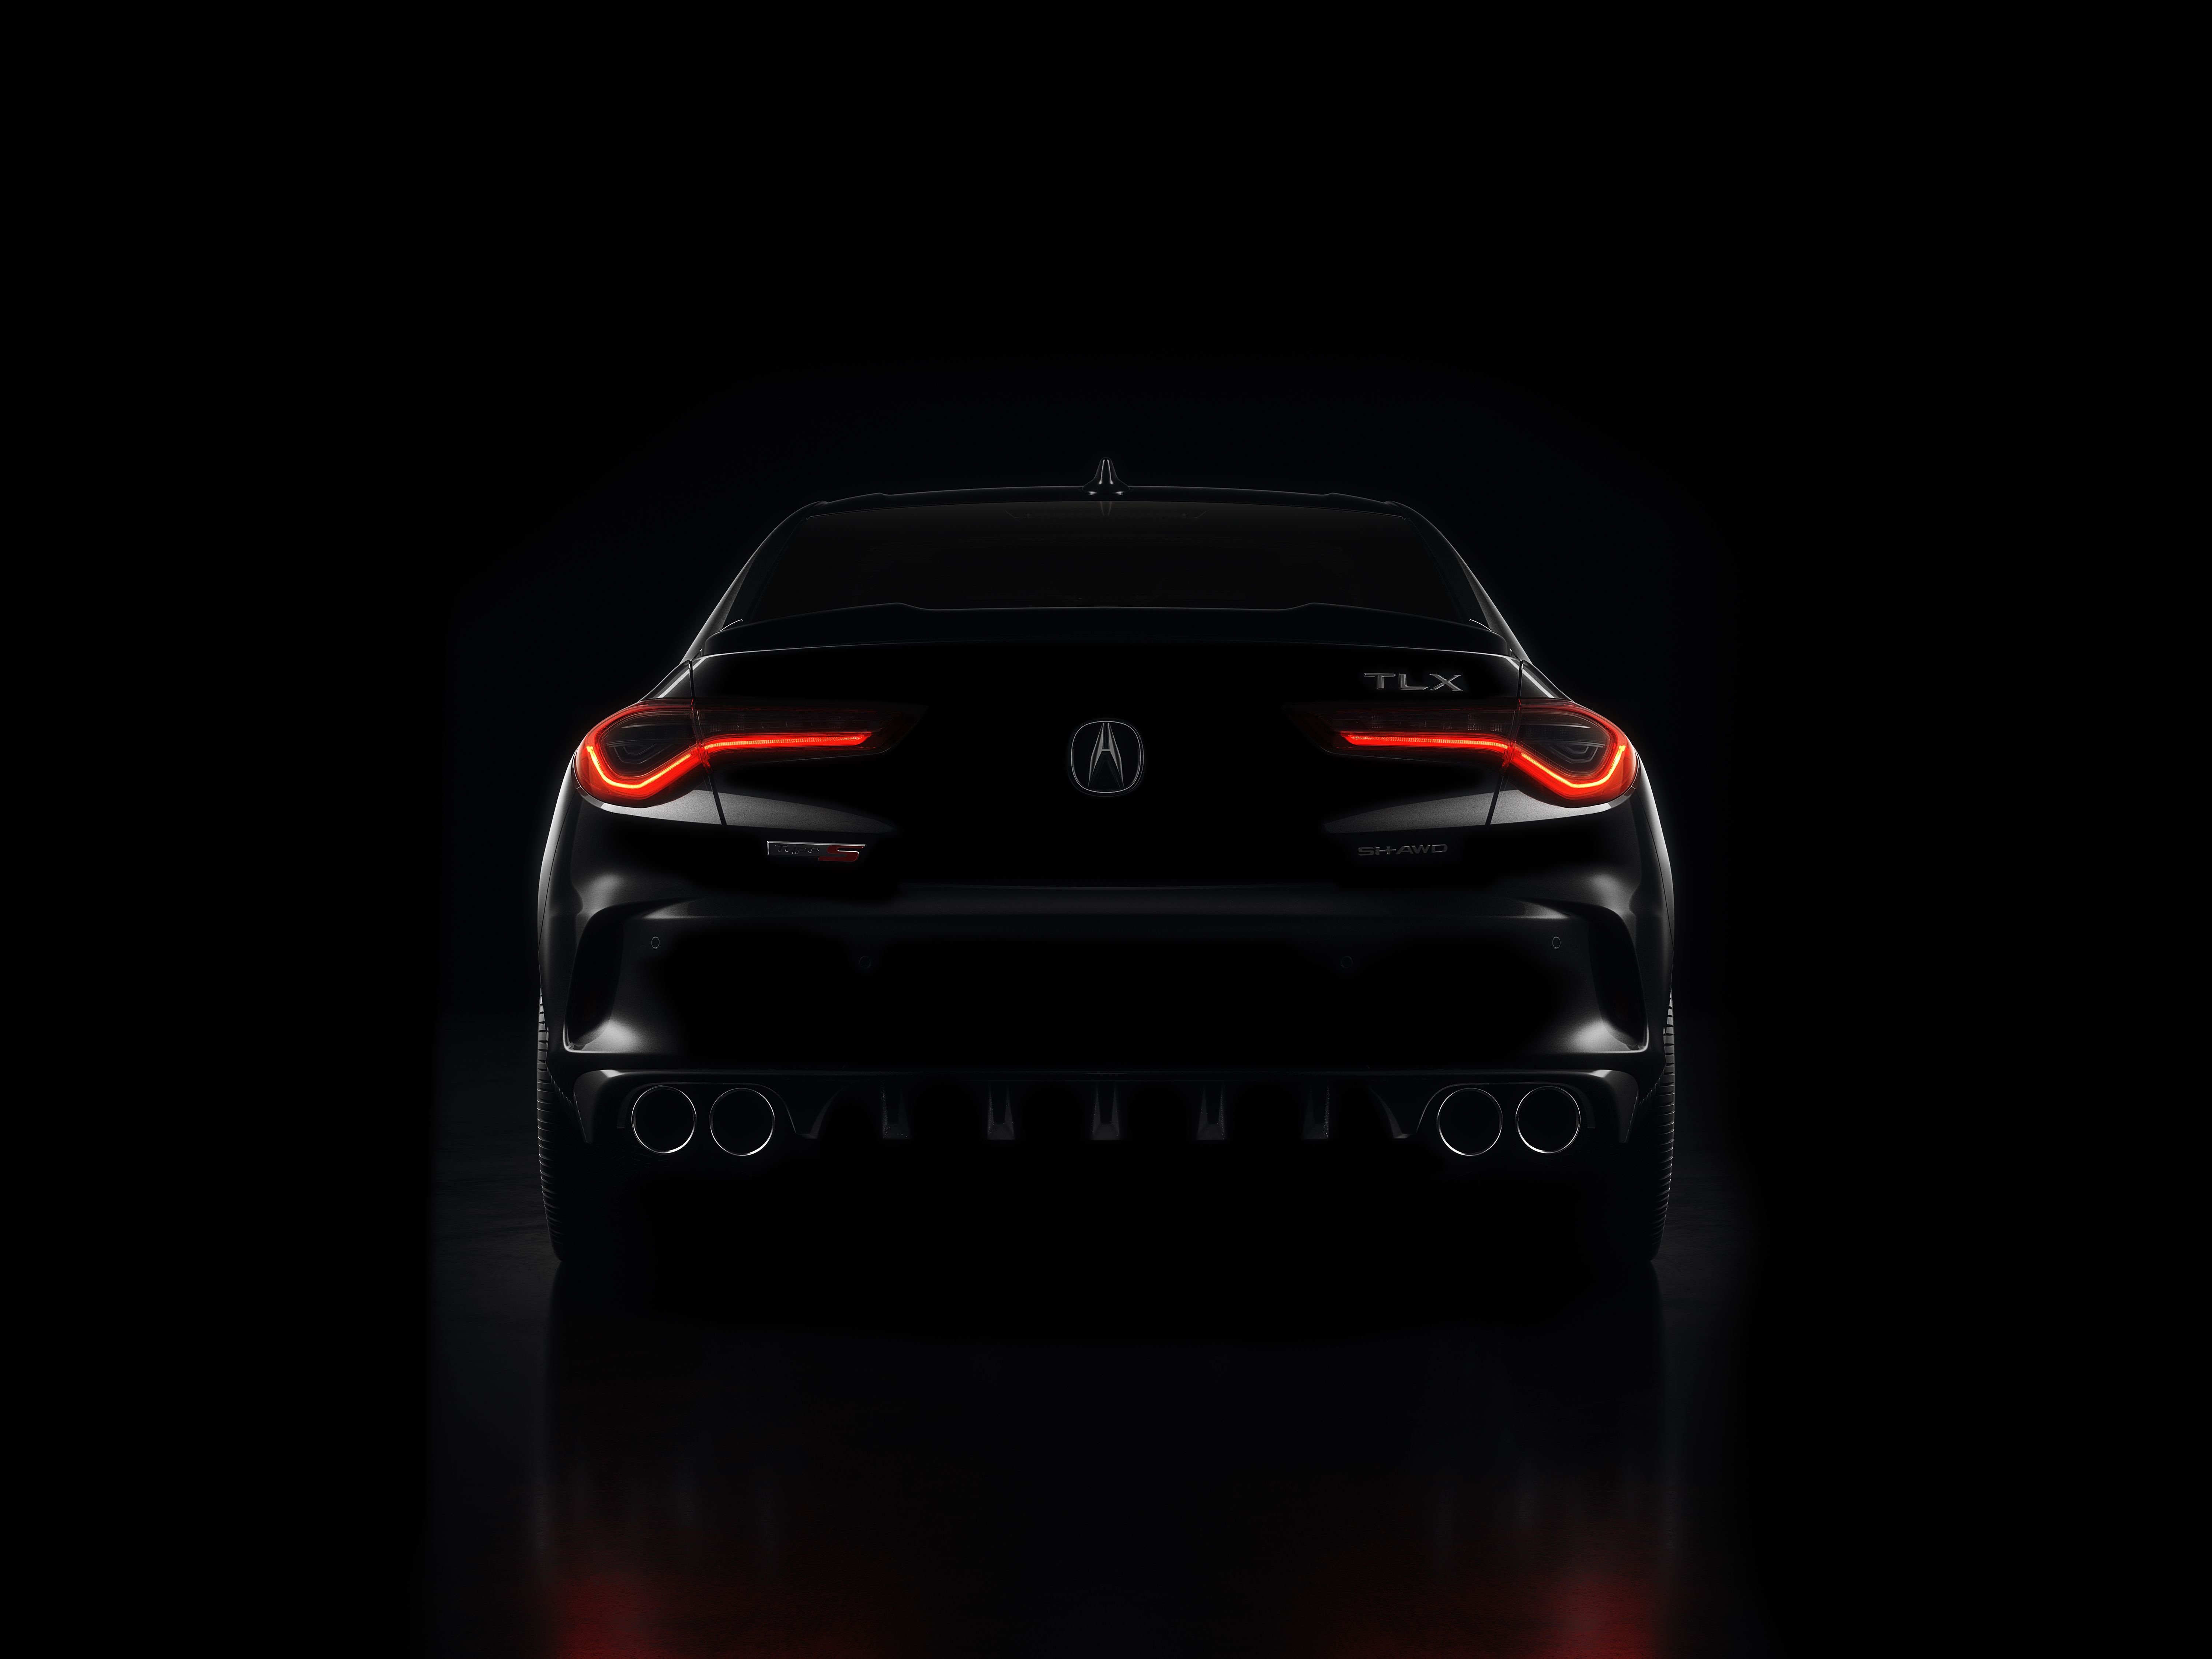 A New Acura Tlx Is Coming In 2021 Here S What We Know